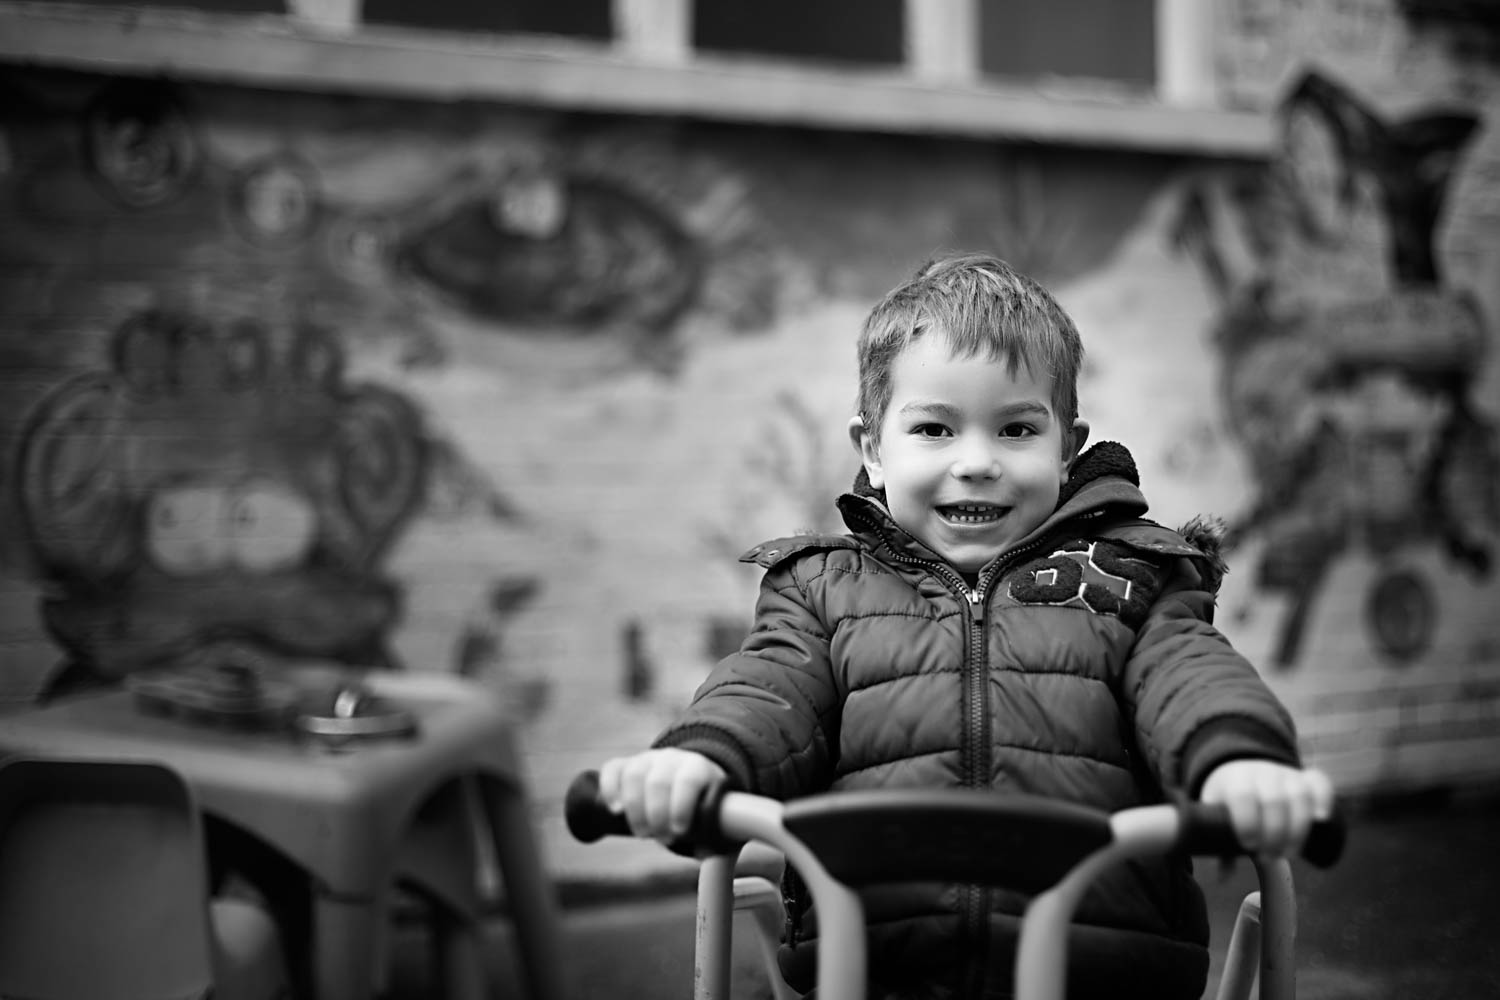 Boy on bike, posing for a portrait during a preschool photoshoot in Turvey Bedfordshire.